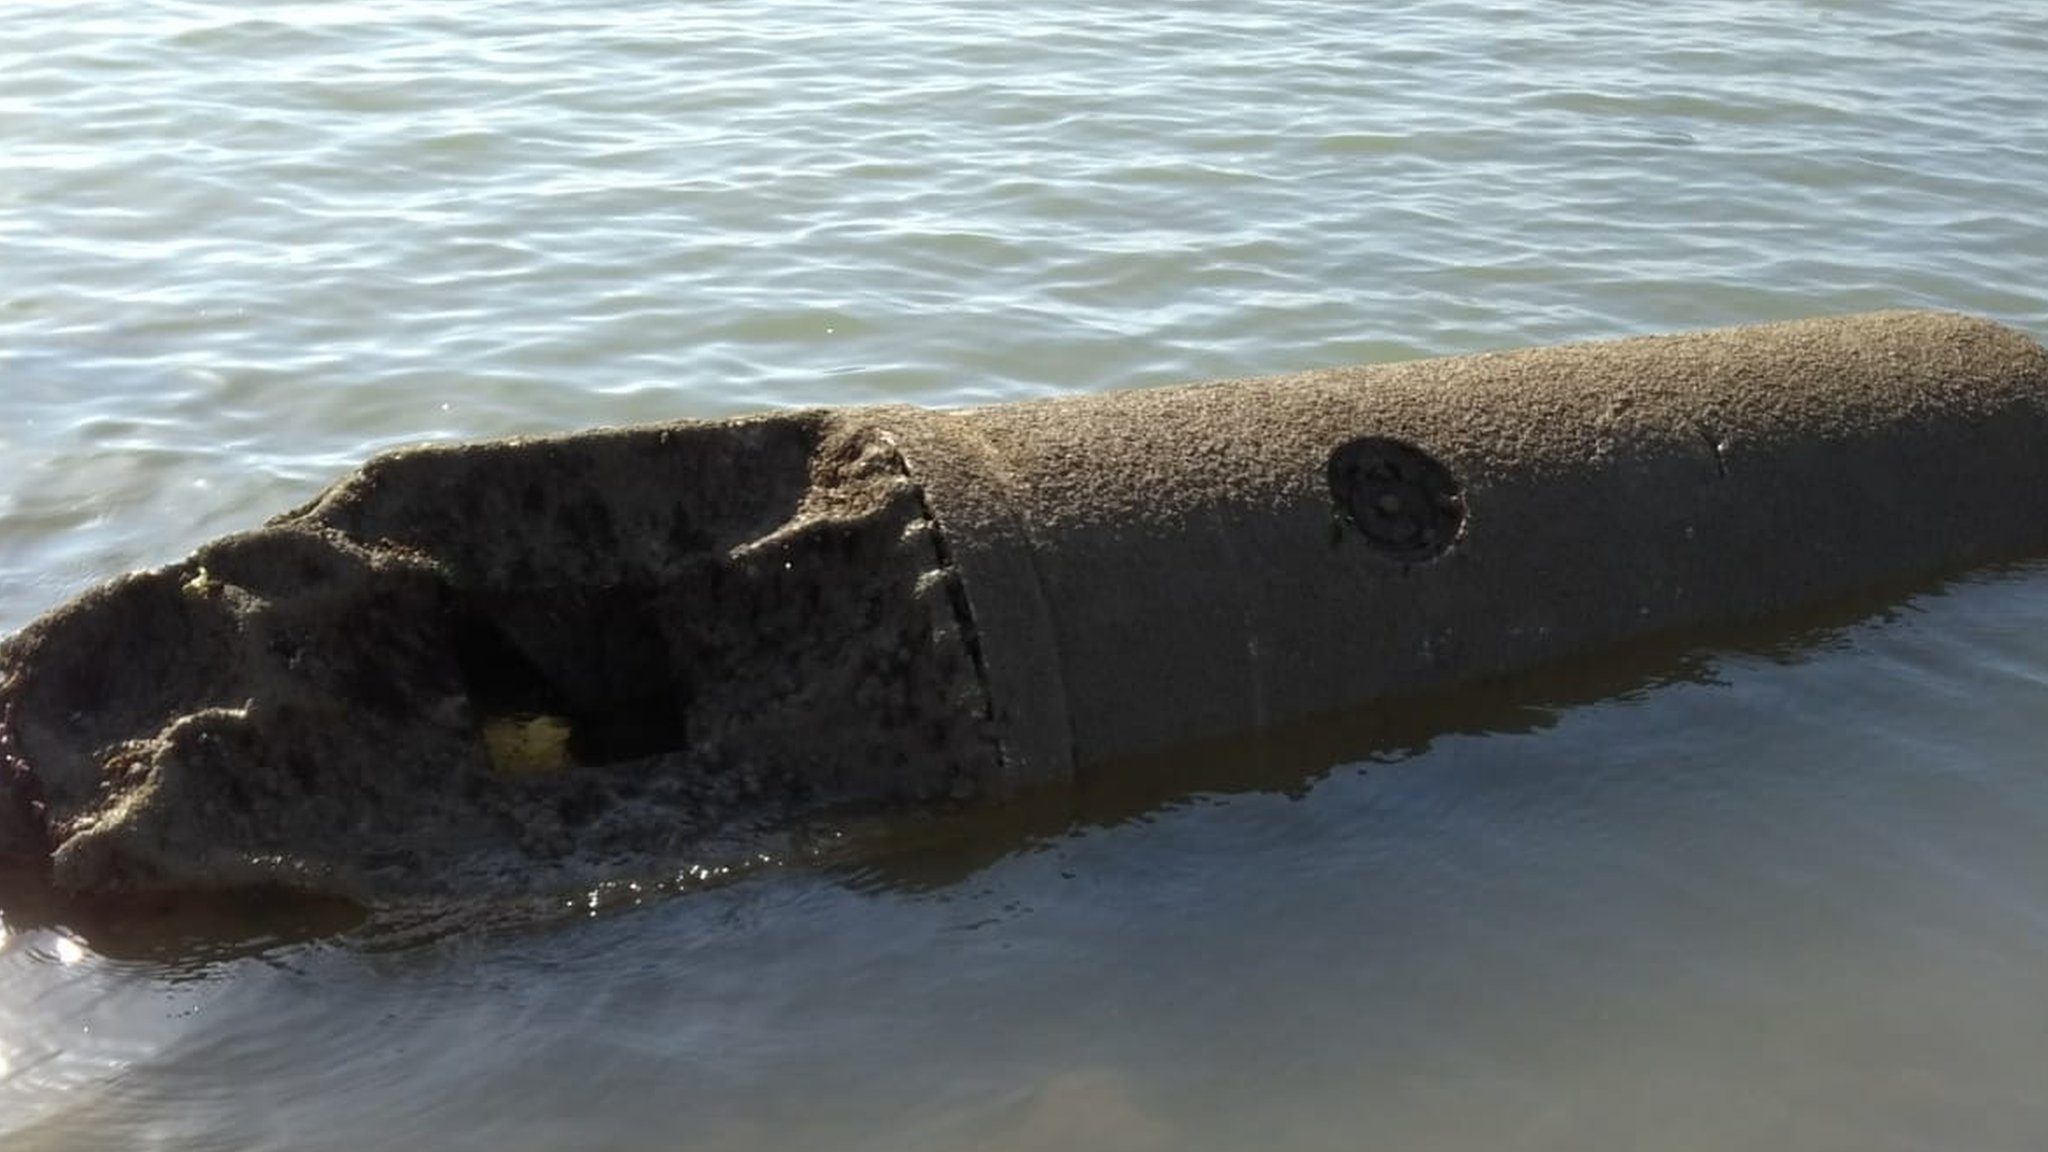 WW2 German sea mine washes up near Bognor Regis